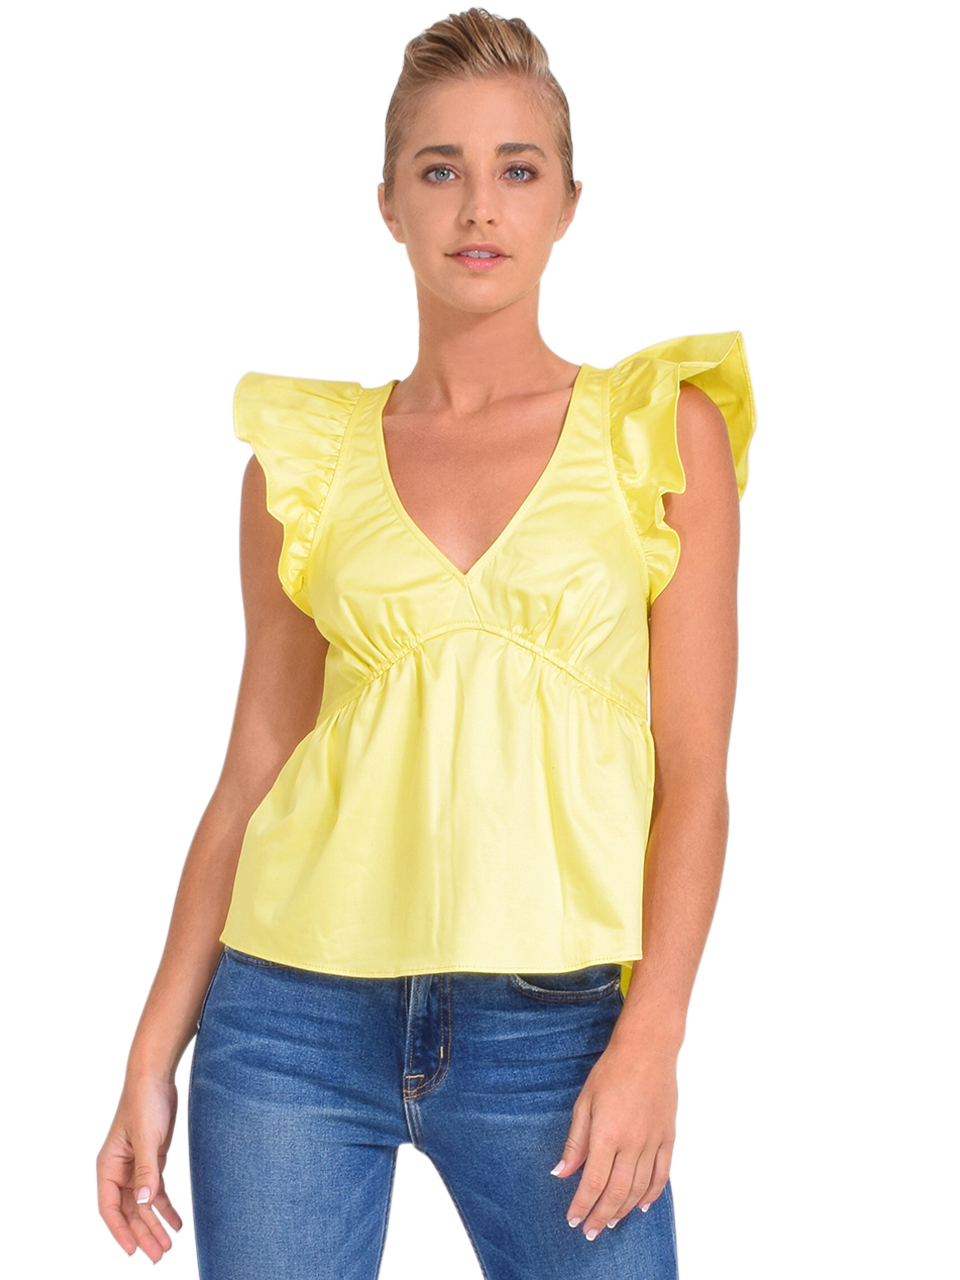 Cinq à Sept Camille Flutter Sleeve Top Front View  x1https://cdn11.bigcommerce.com/s-3wu6n/products/34020/images/113384/DSC_0714_Full__51301.1621815949.244.365.jpg?c=2cx2